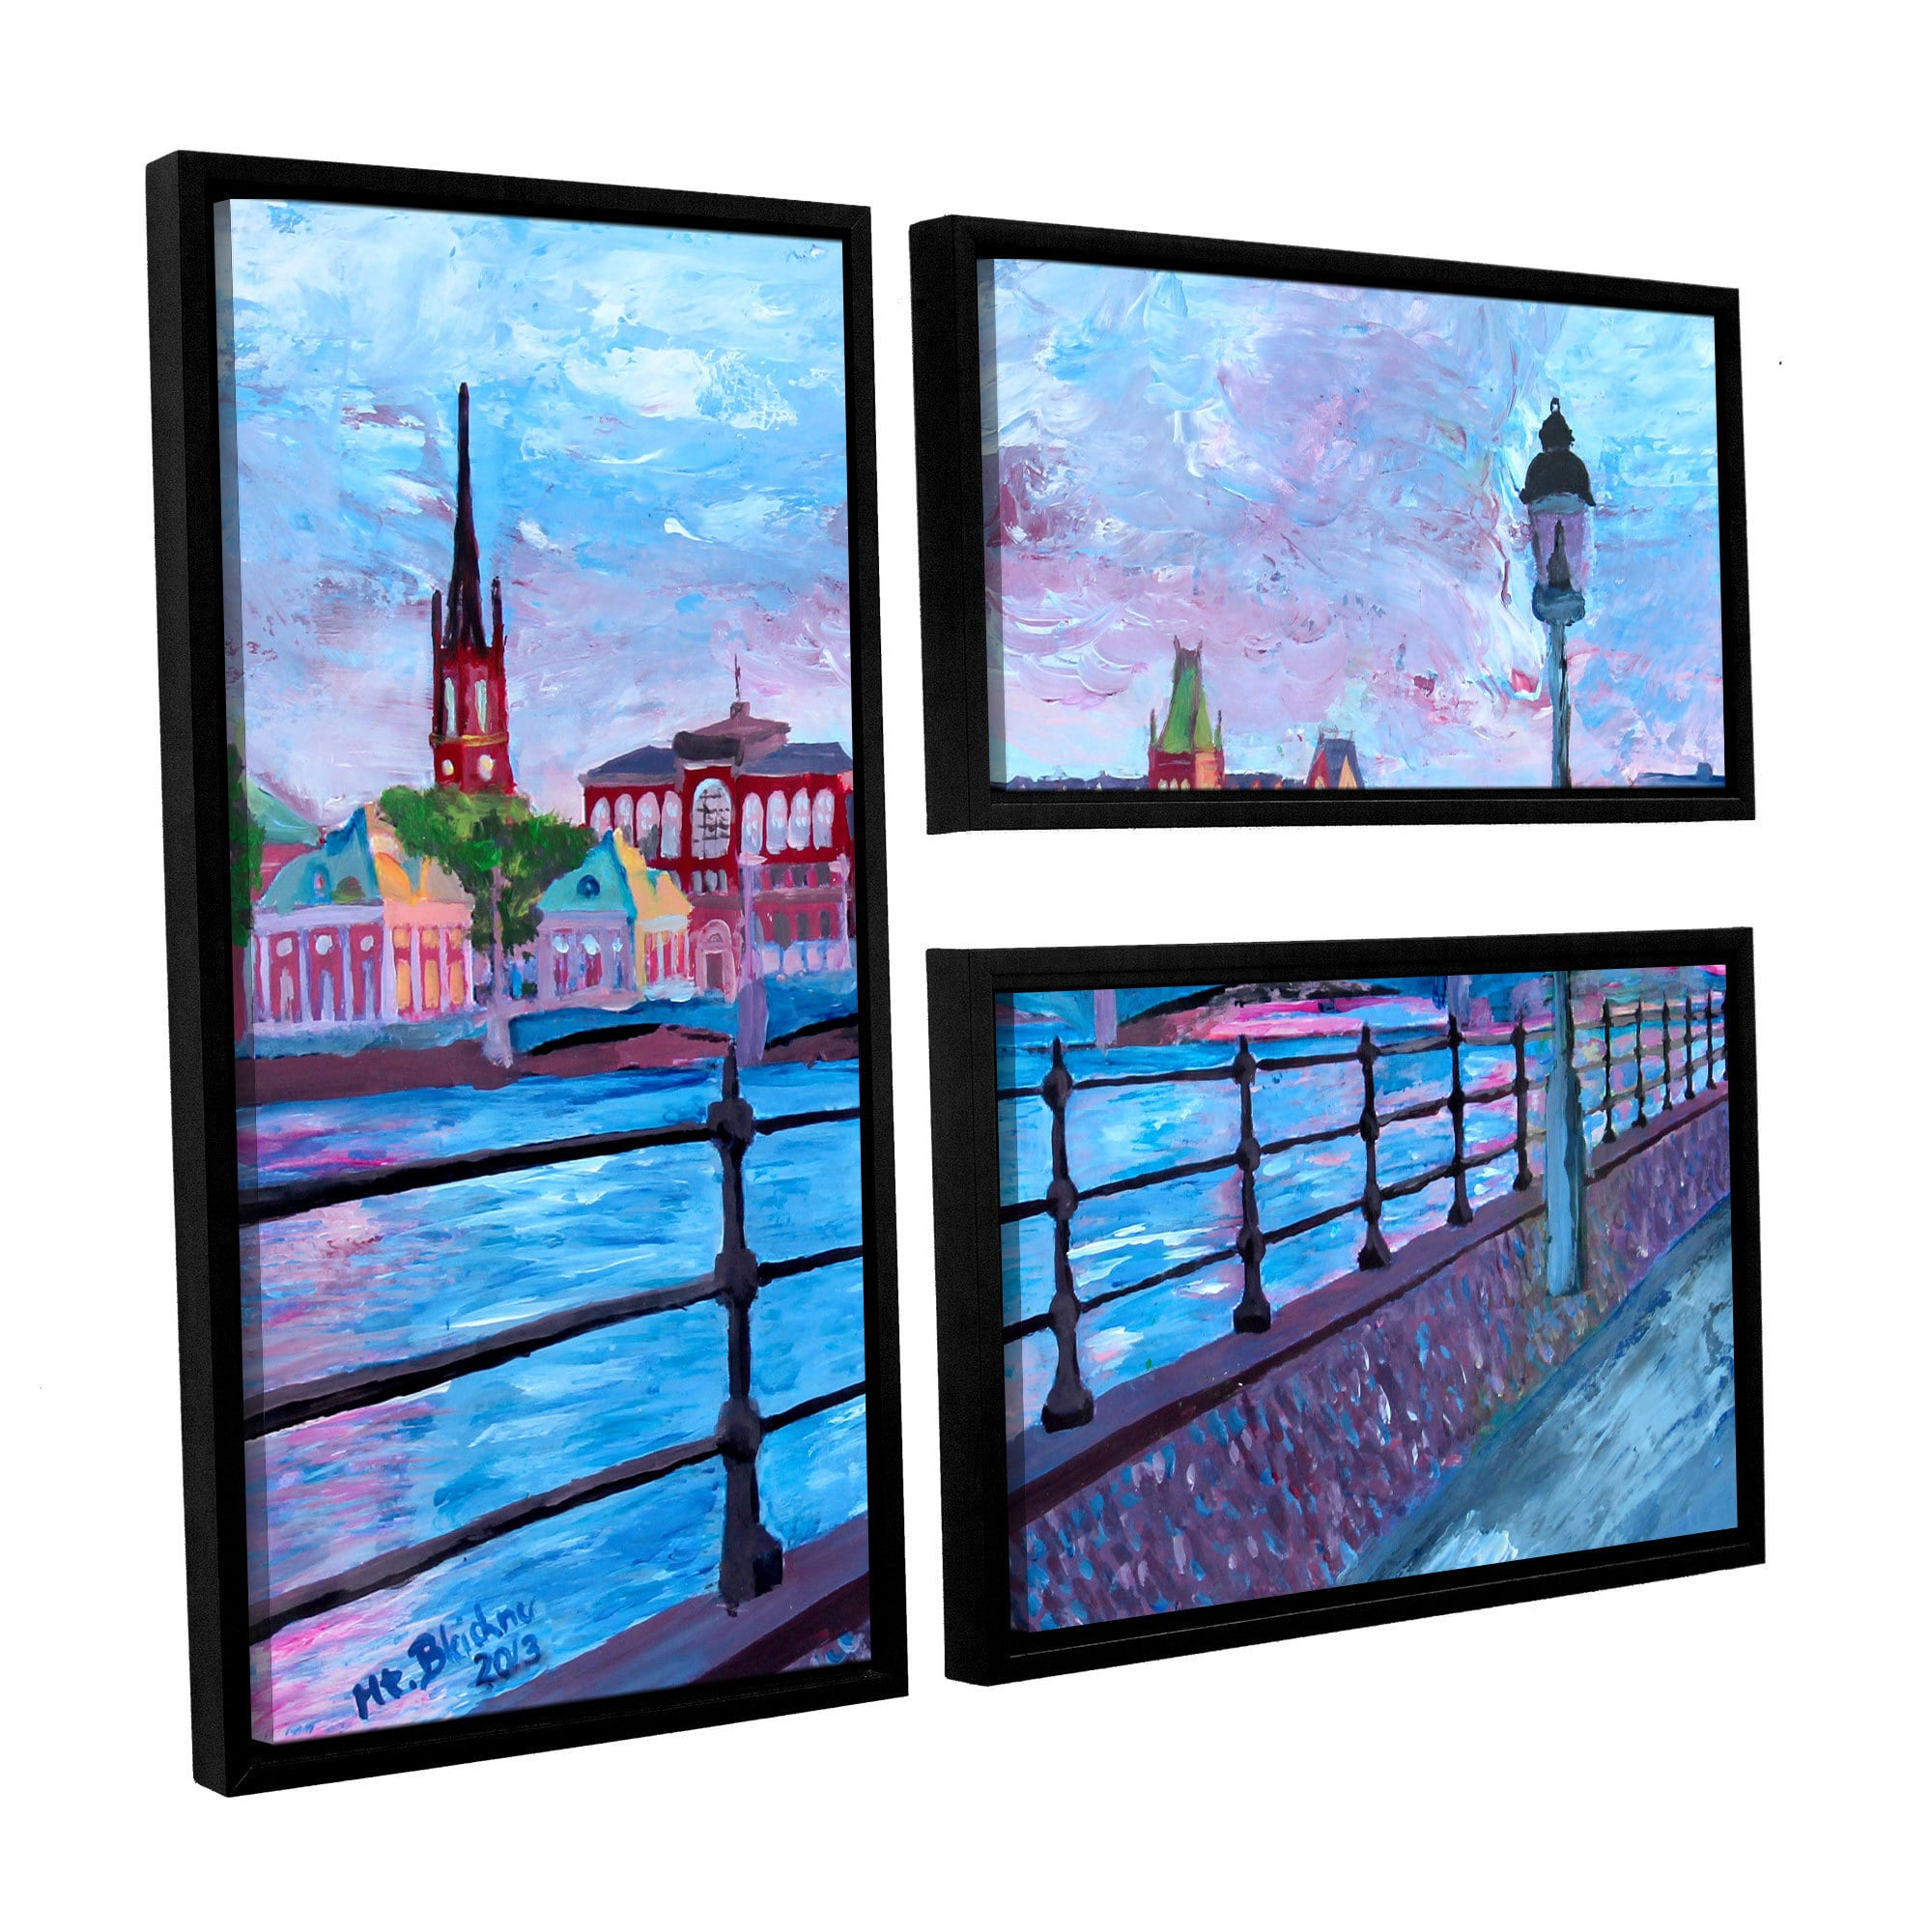 Artwall Marcus Martina Bleichner S Stockholm City View 3 Piece Floater Framed Canvas Flag Set Overstock 11375248